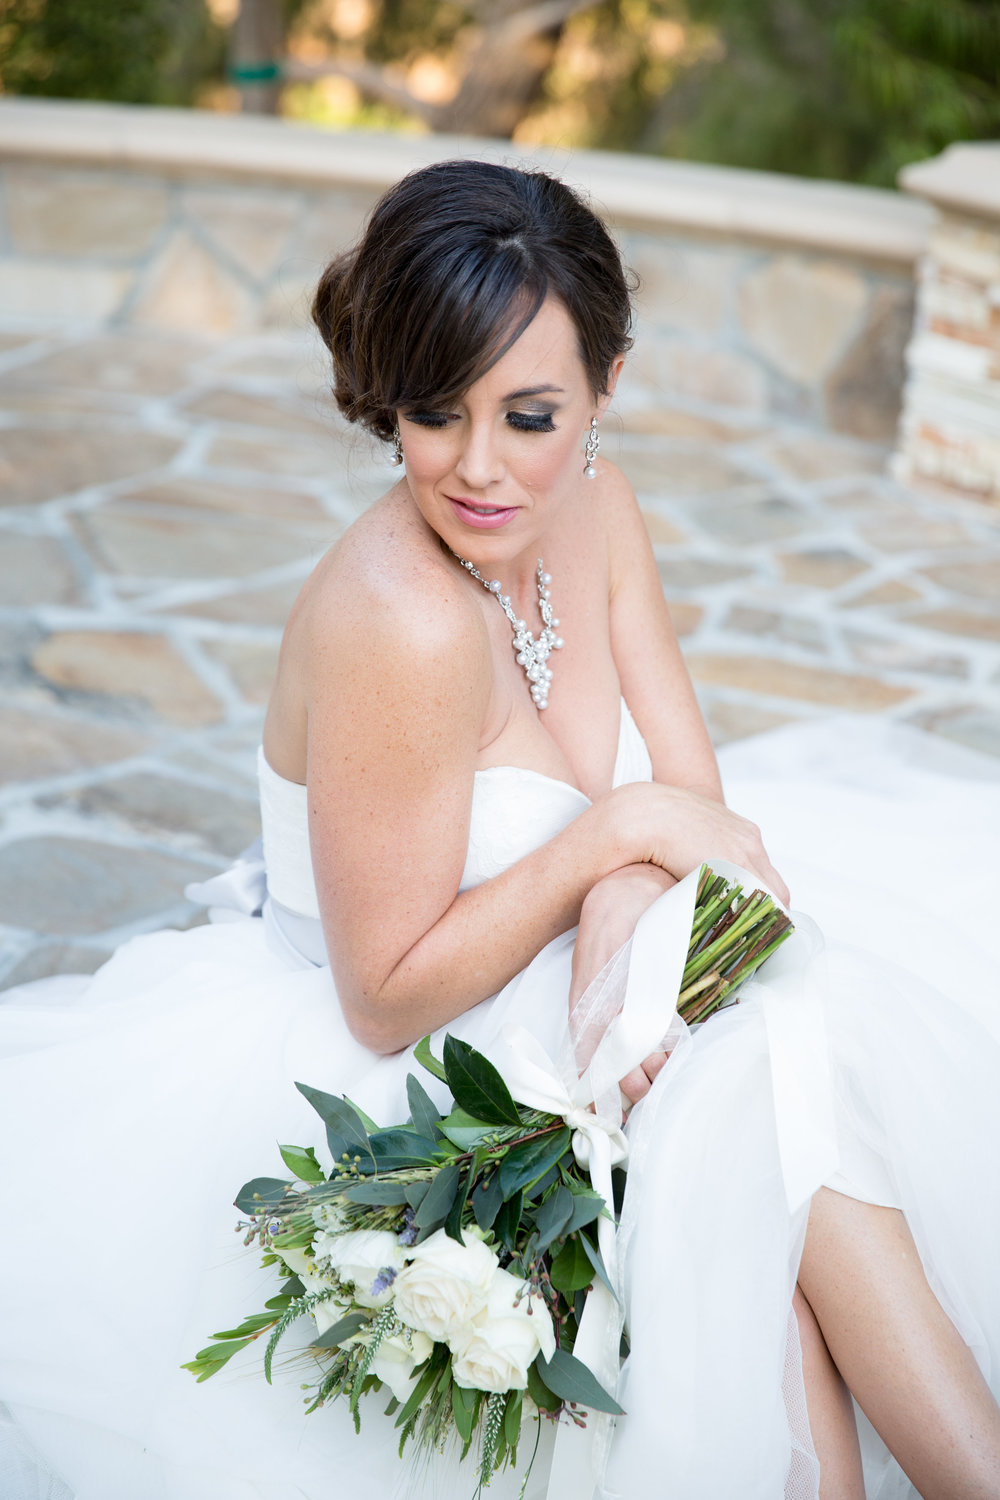 Temecula Wedding Hair and Makeup | Temecula Winery Wedding | Danza Del Sol Winery Wedding